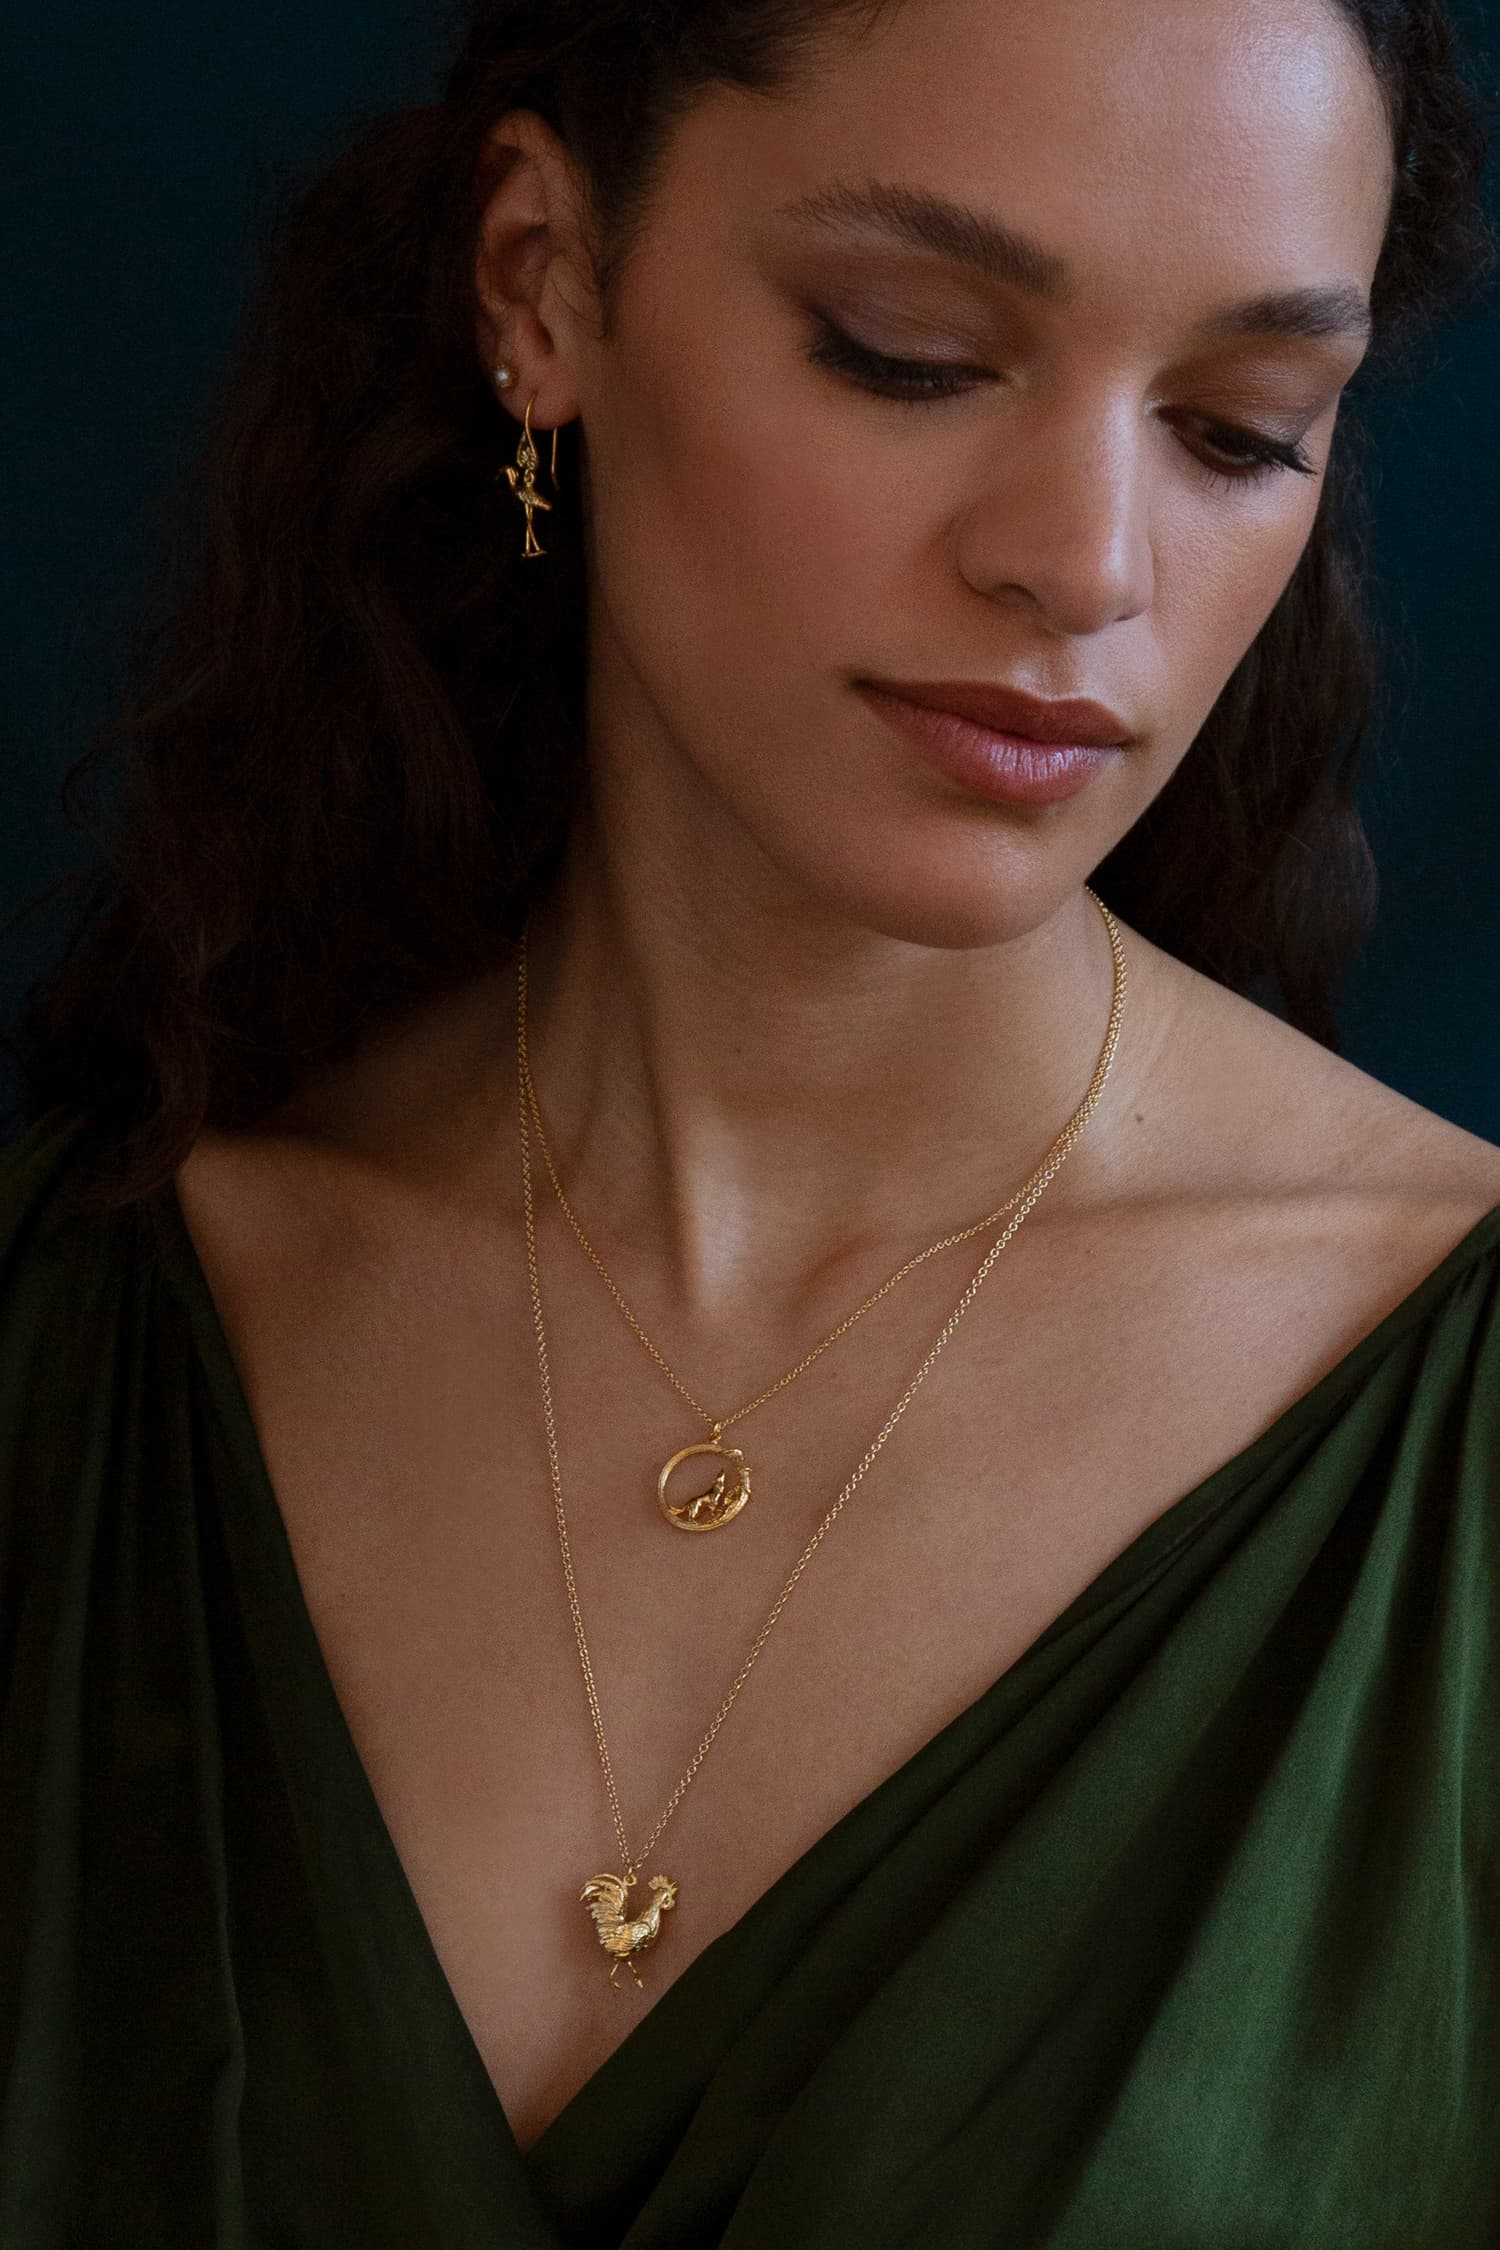 Model wears Fables Column Loop Necklace with Howling Wolf